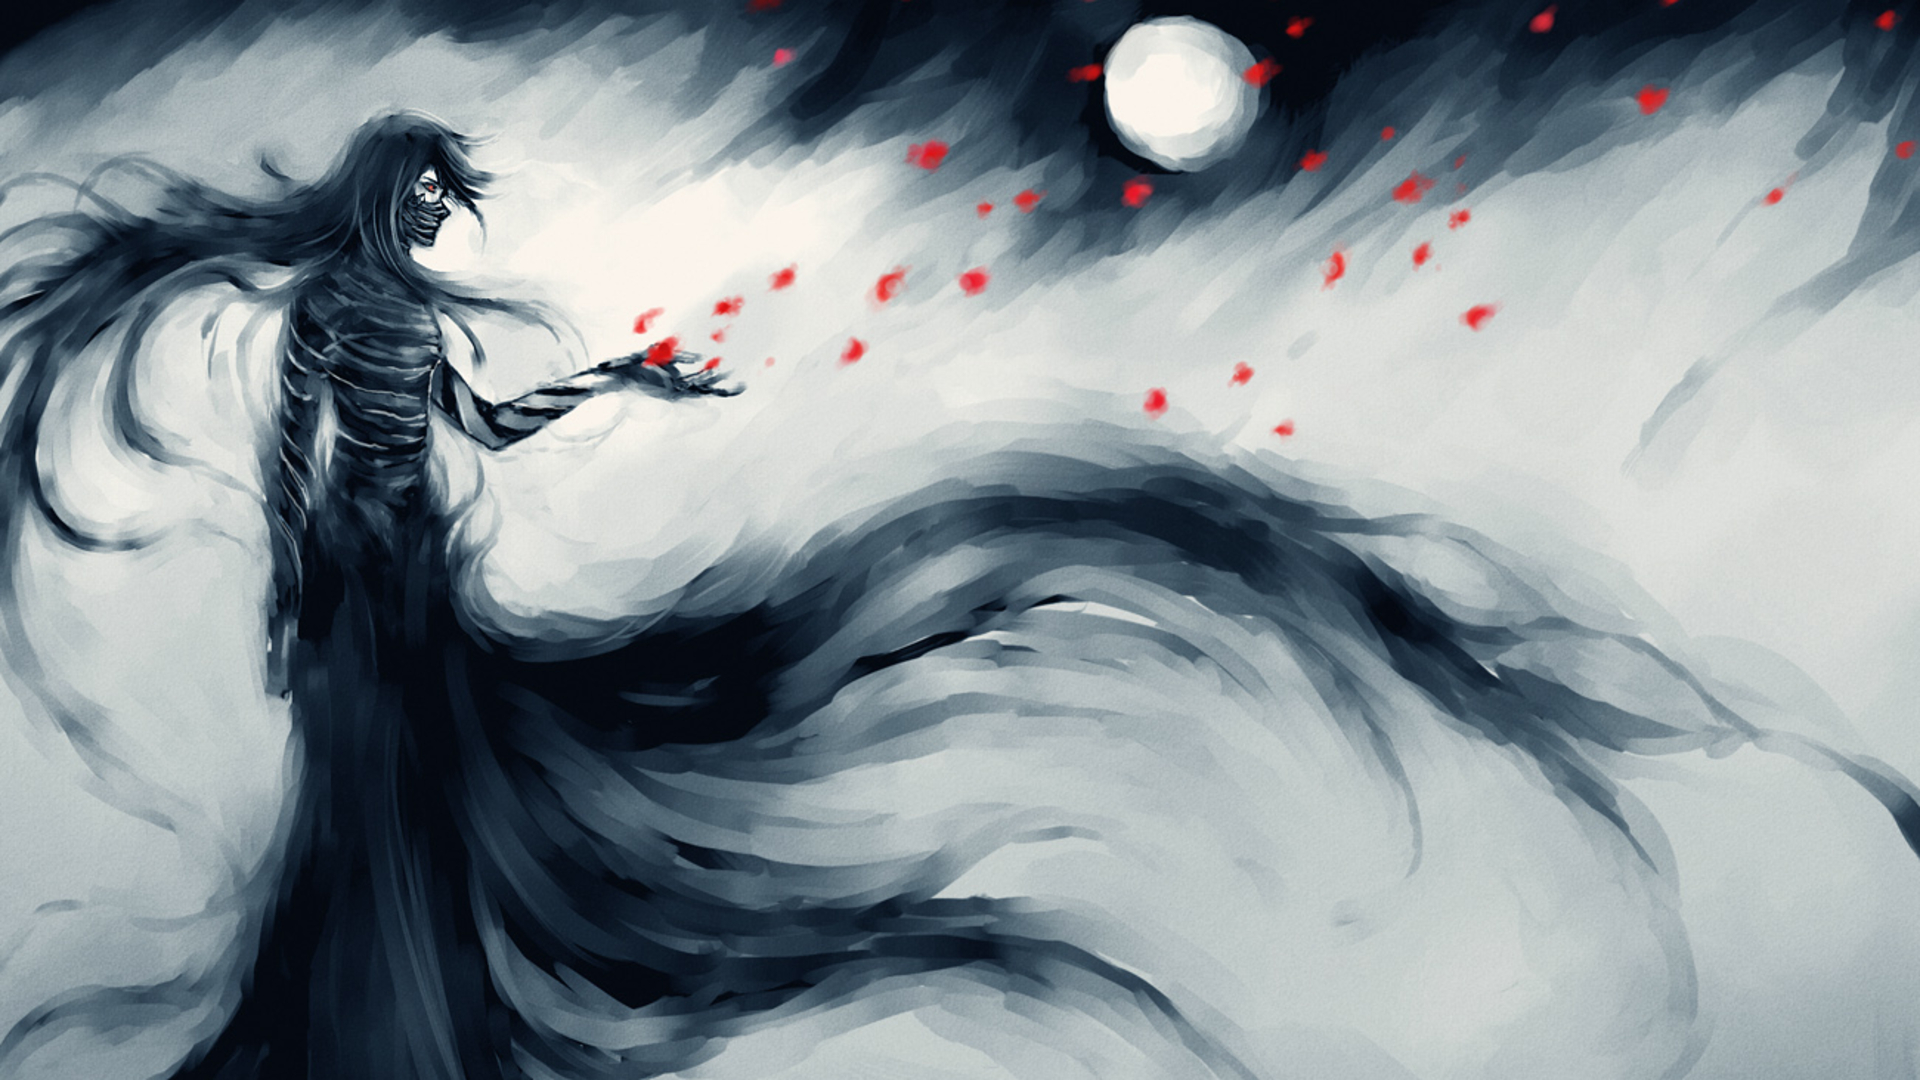 Free Download Bleach Anime Wallpapers 1920x1080 5717 Wallpaper